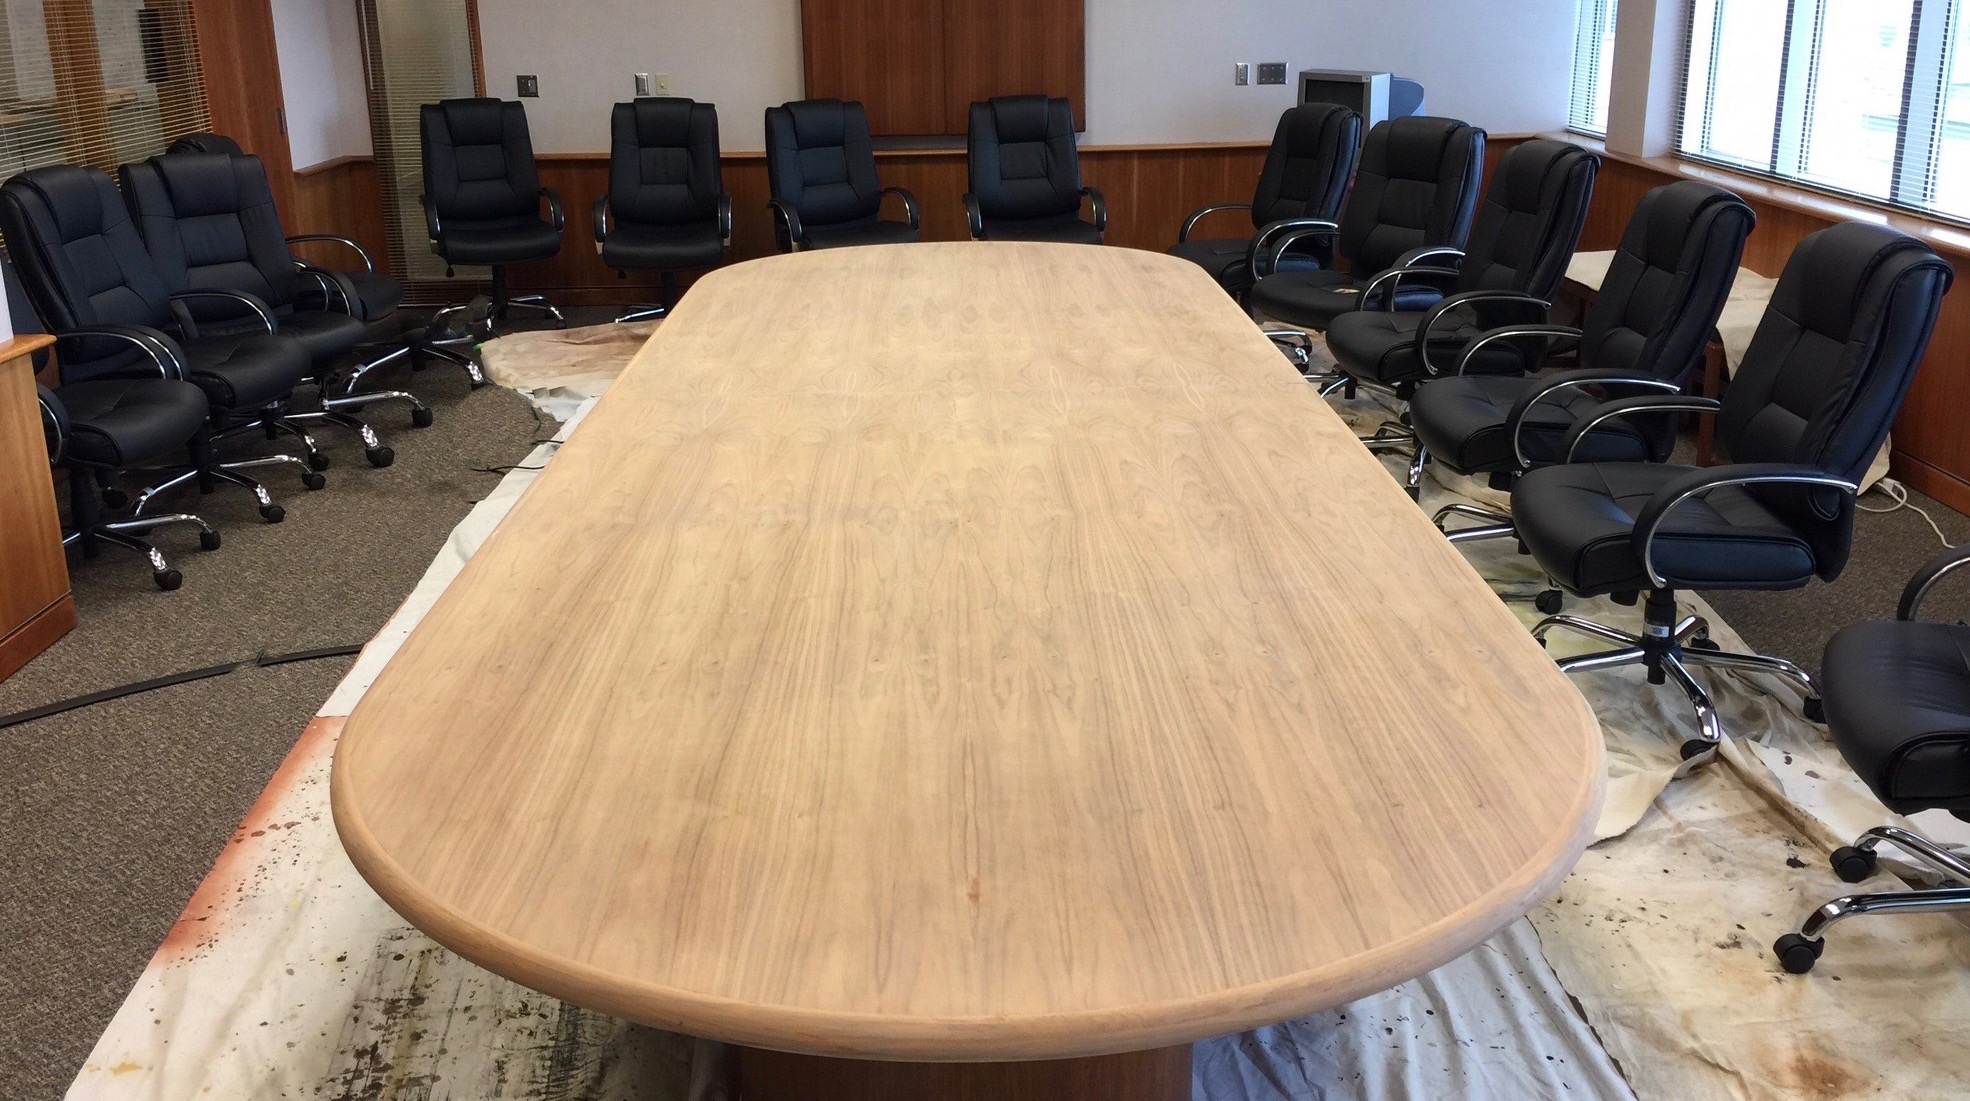 Fresh Air Finishers Has Refinished Many Conference Room Tables. Conference  Room Tables Can Be Very Challenging To Move, Especially If They Have Been  Fitted ...